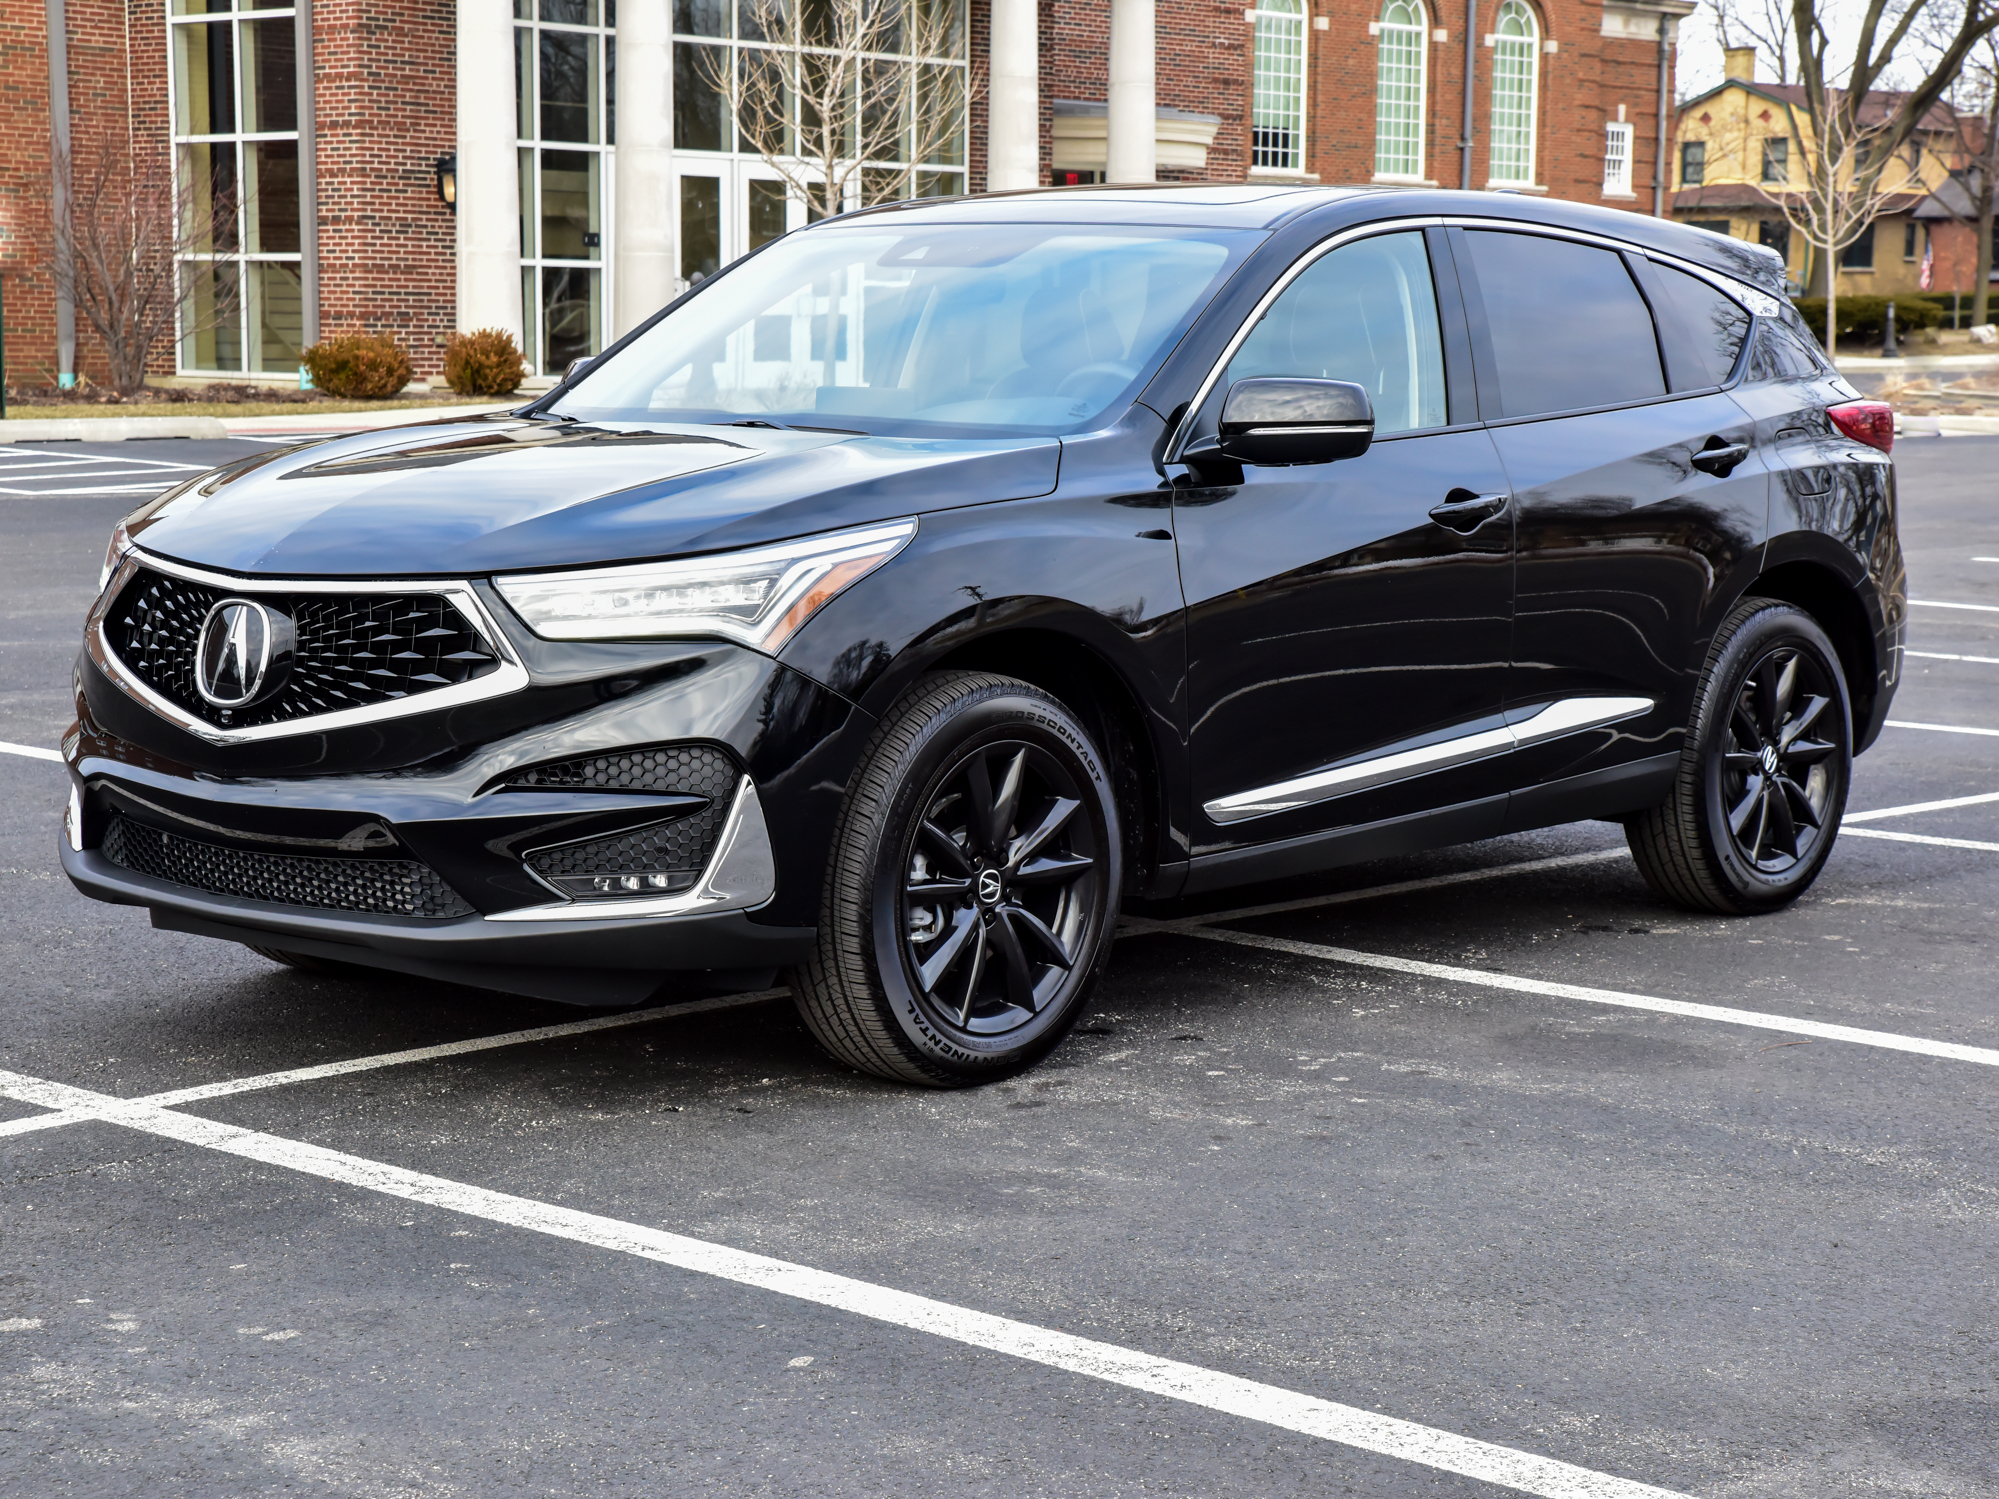 Decal Ideas For 2020 Acura Rdx Fast and fun, but flawed: The Acura RDX reviewed | Ars Technica